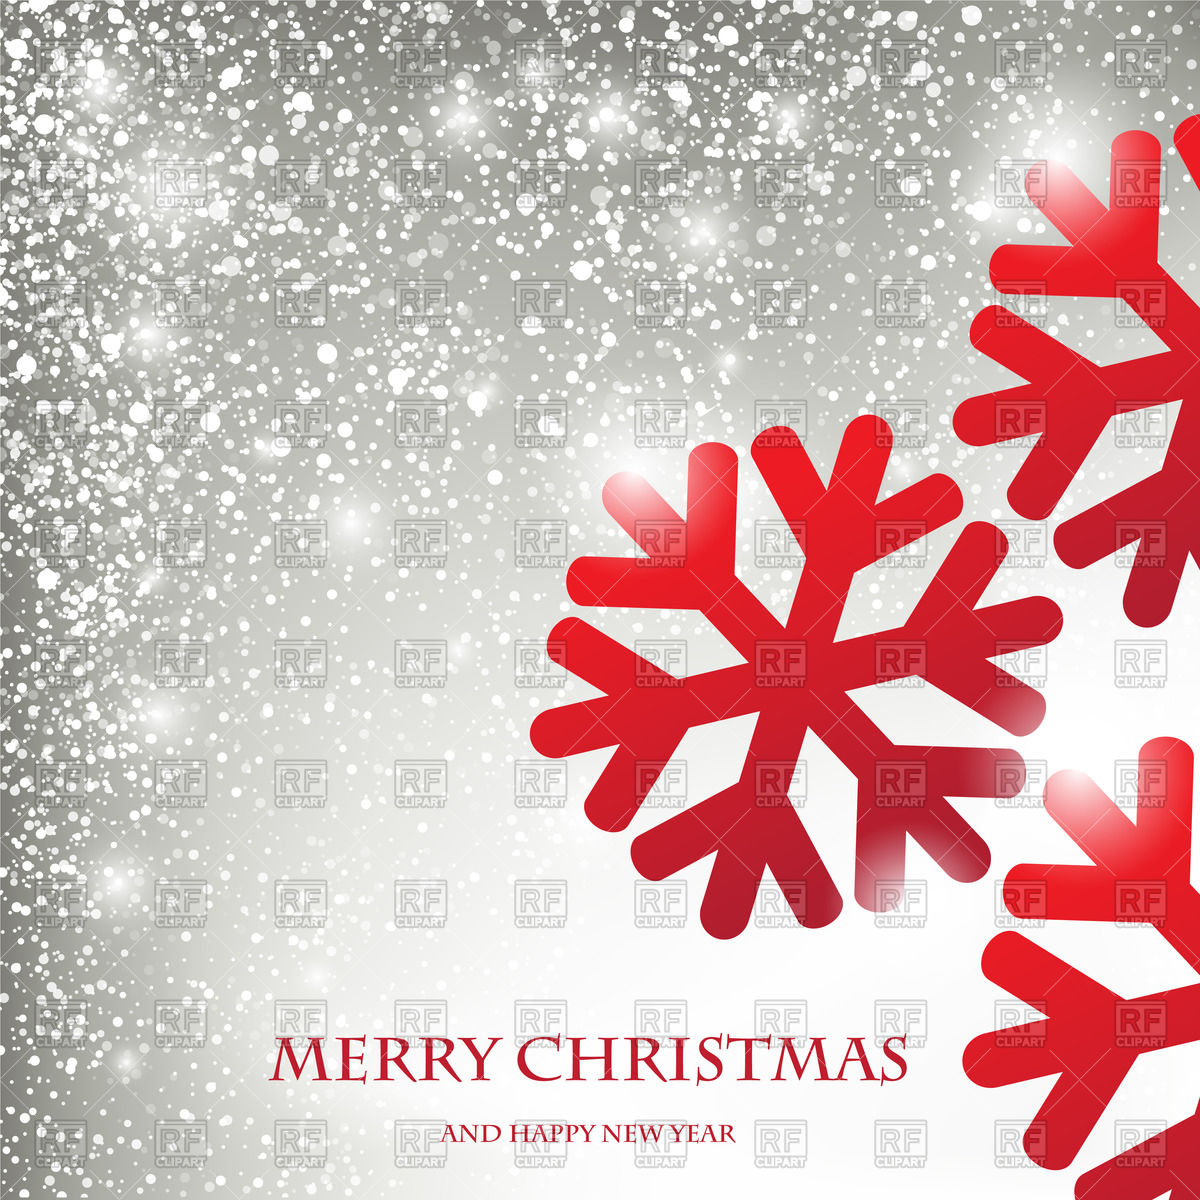 Winter holiday greeting card with snowflakes and snowfall Vector.